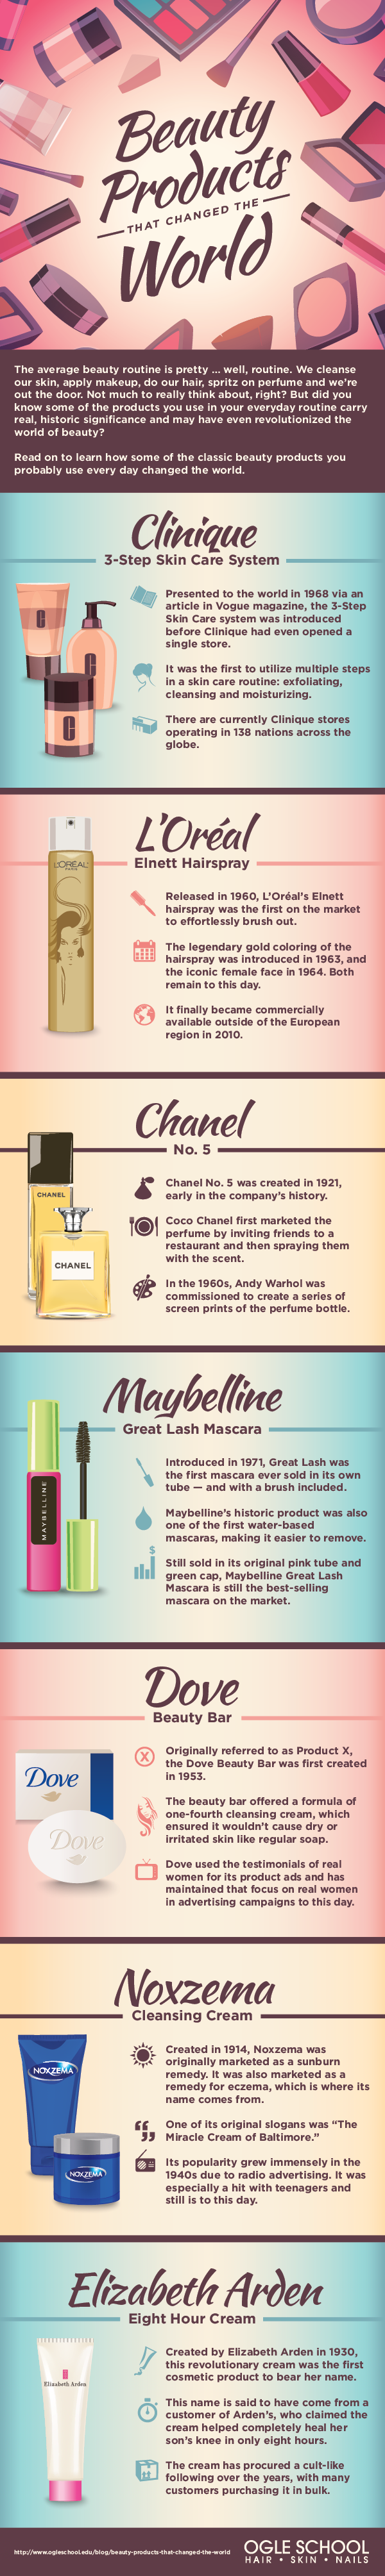 Beauty Products That Changed The World